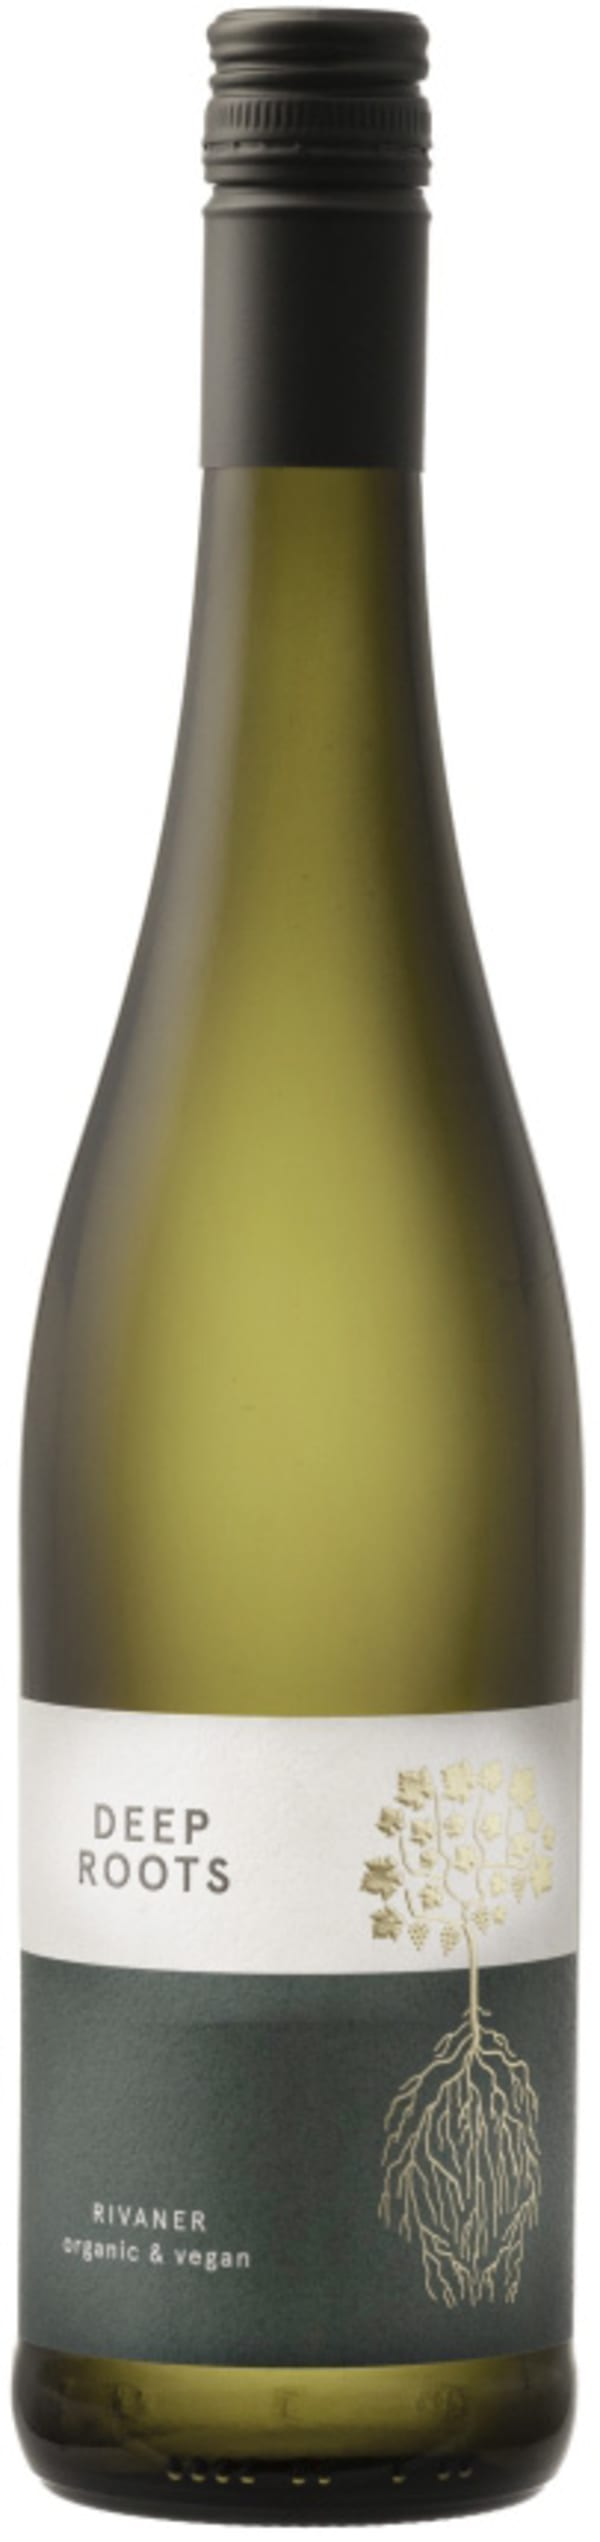 Deep Roots Müller-Thurgau Organic 2016